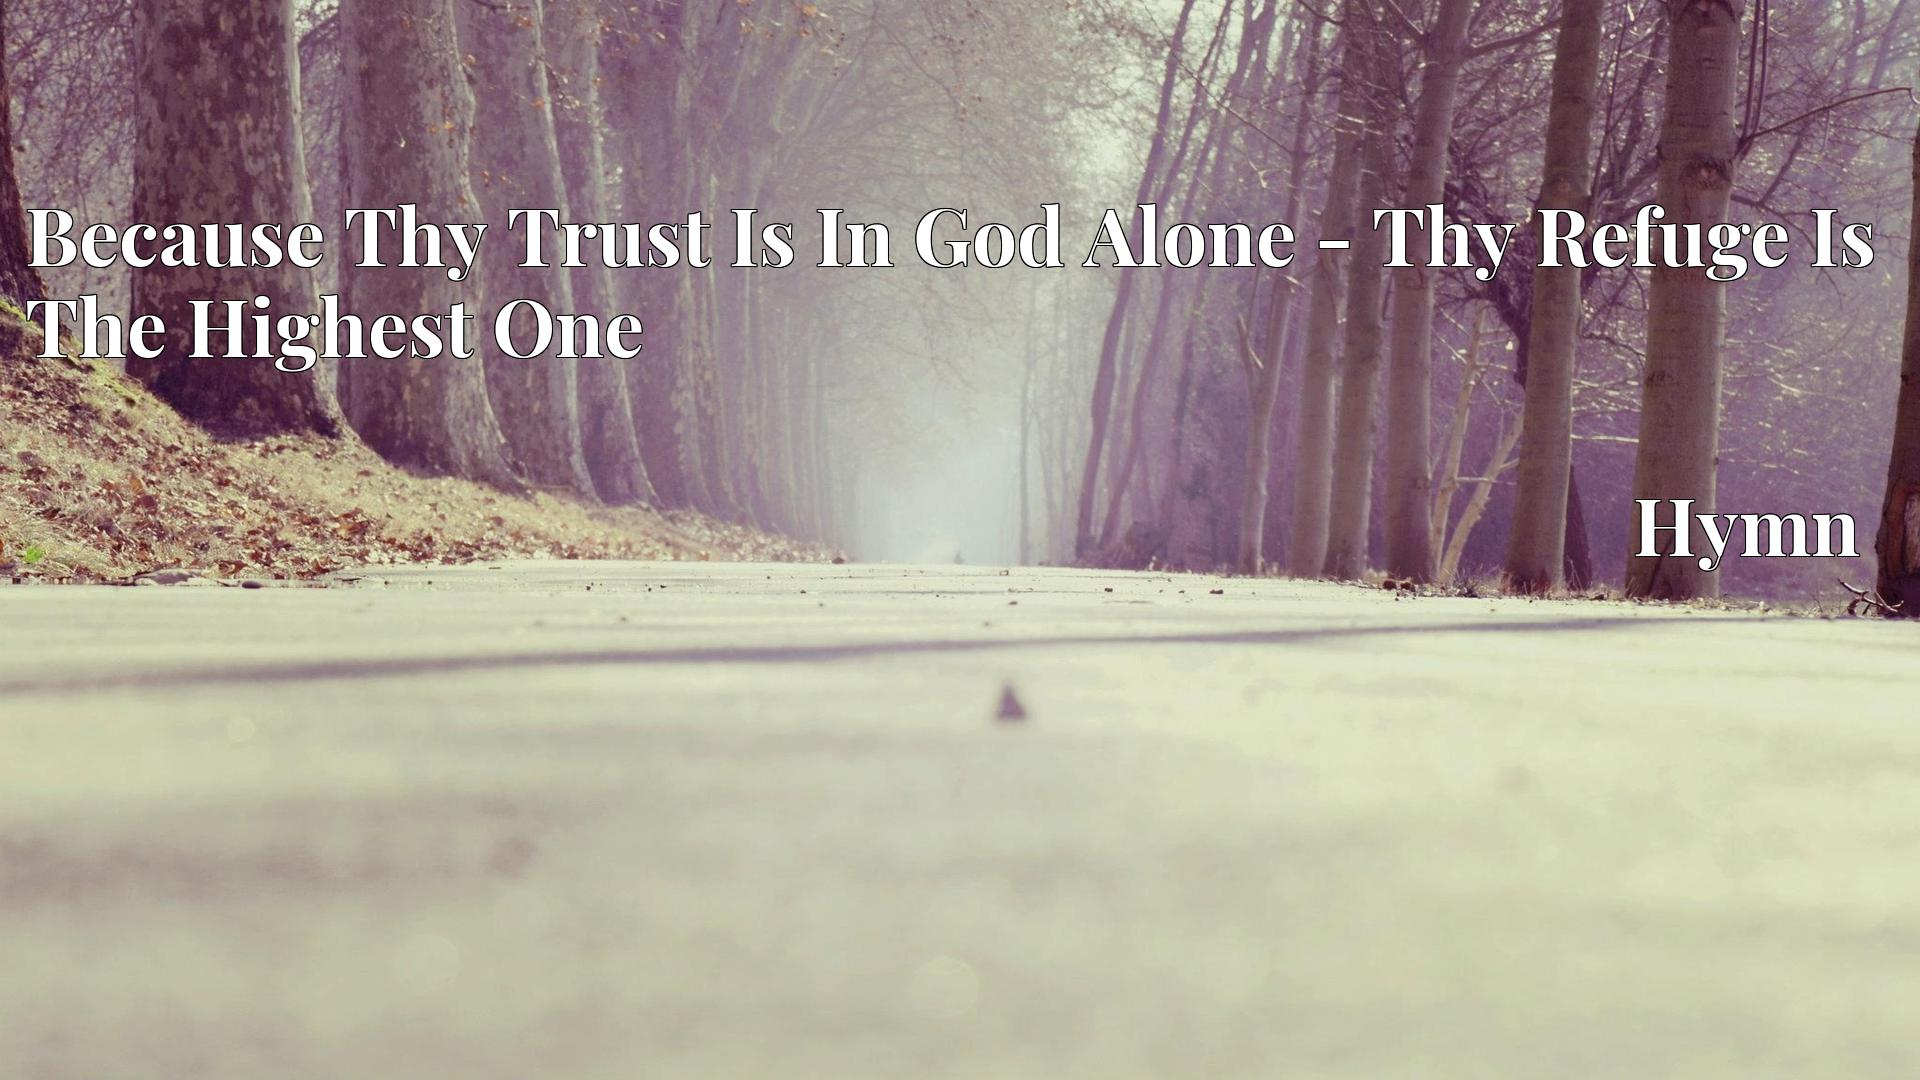 Because Thy Trust Is In God Alone - Thy Refuge Is The Highest One Hymn